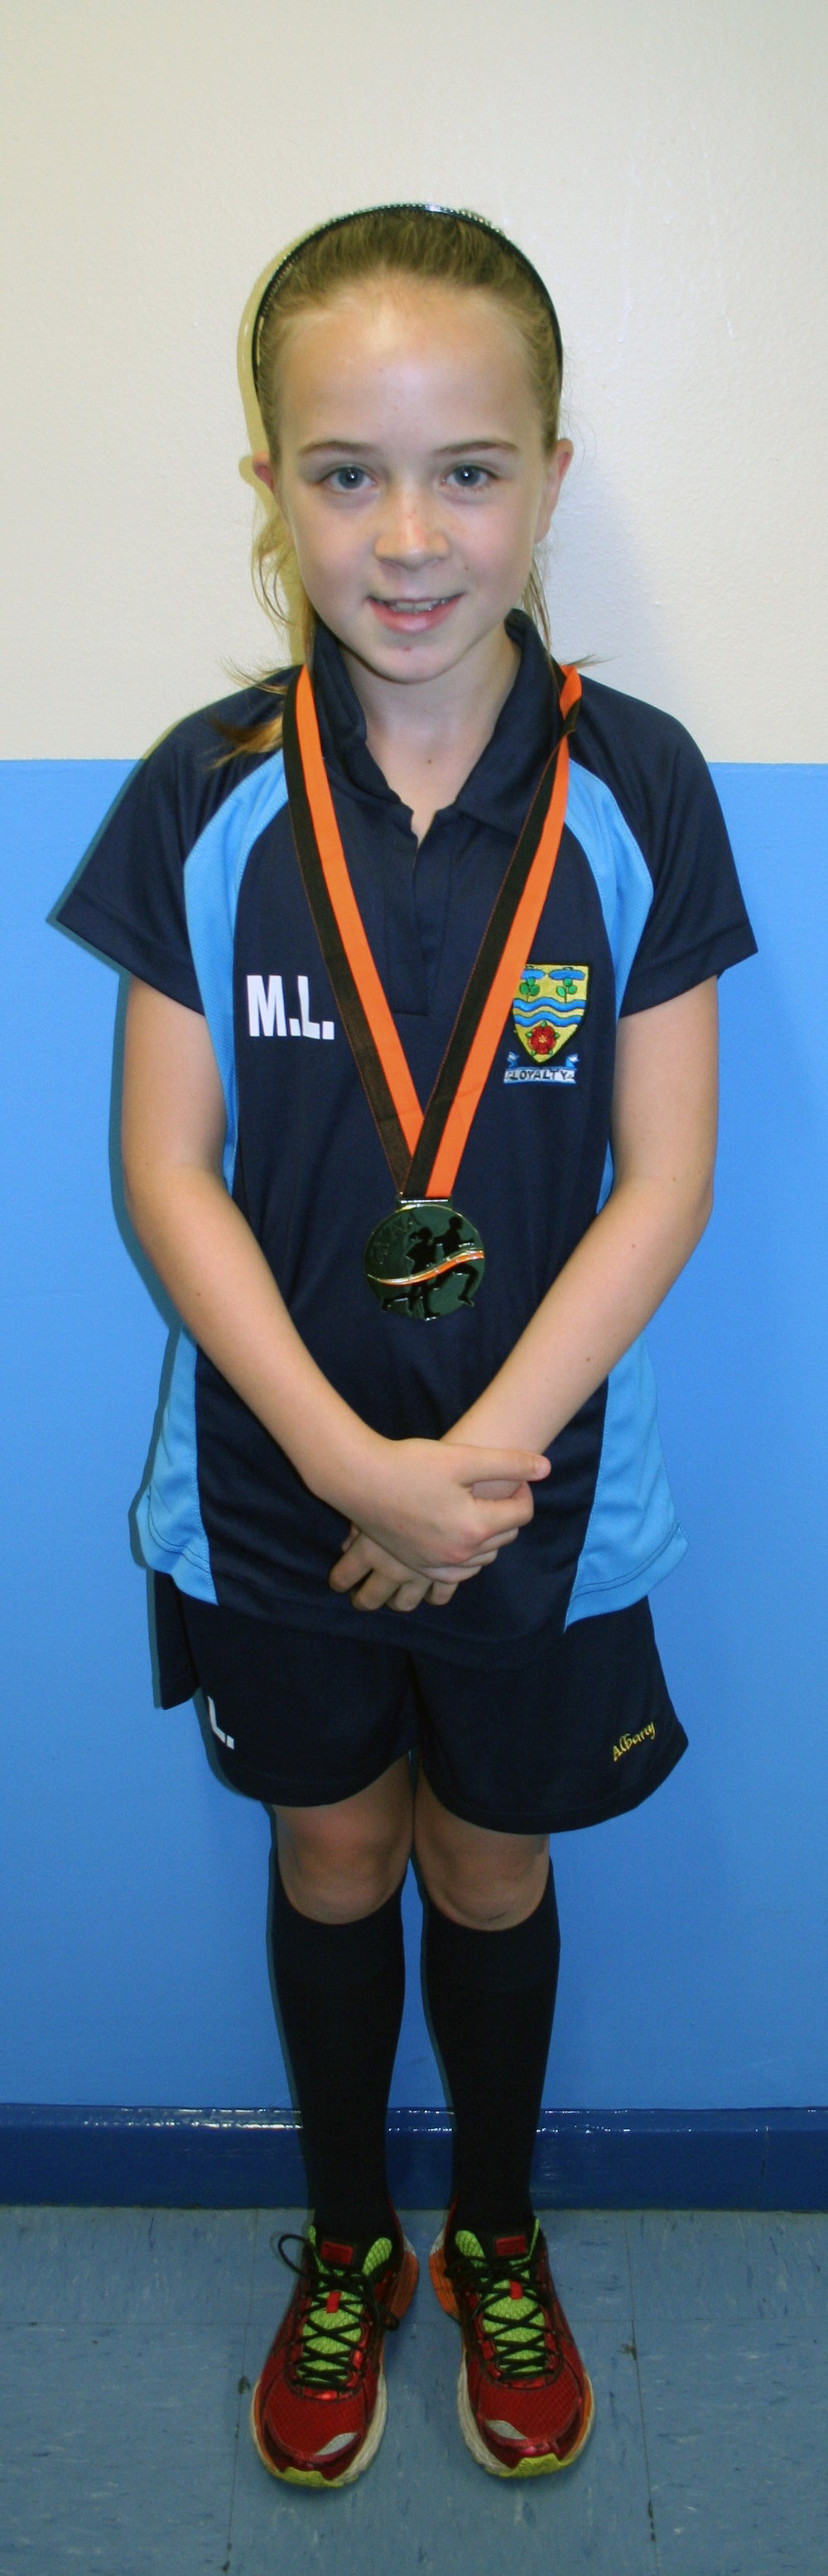 Millie Medal sep 2016.jpg